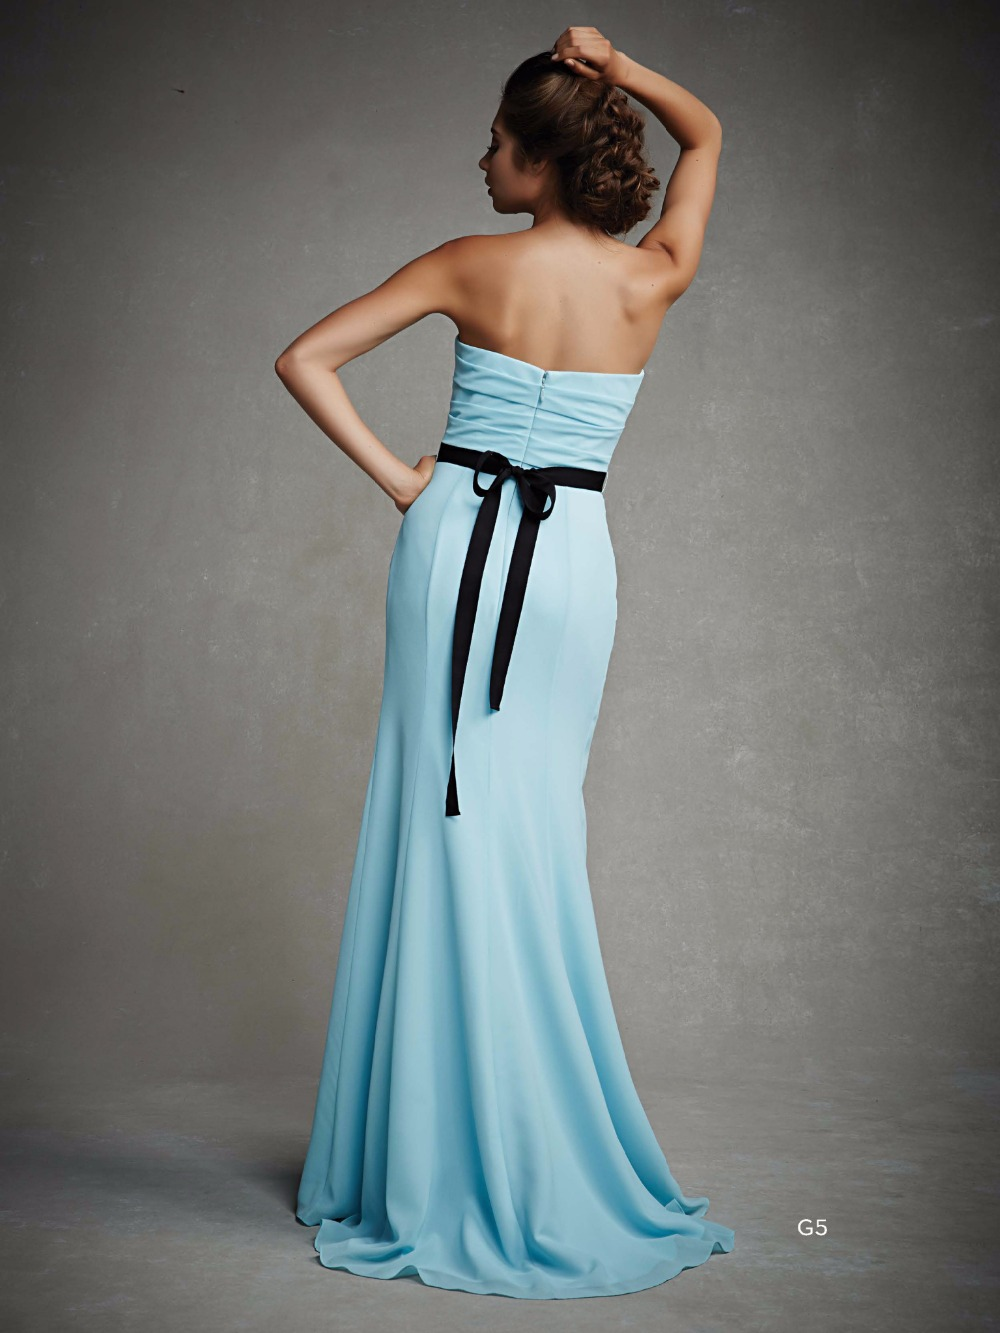 Simple robe soiree party evening elegant maxi dress vintage elegant ...